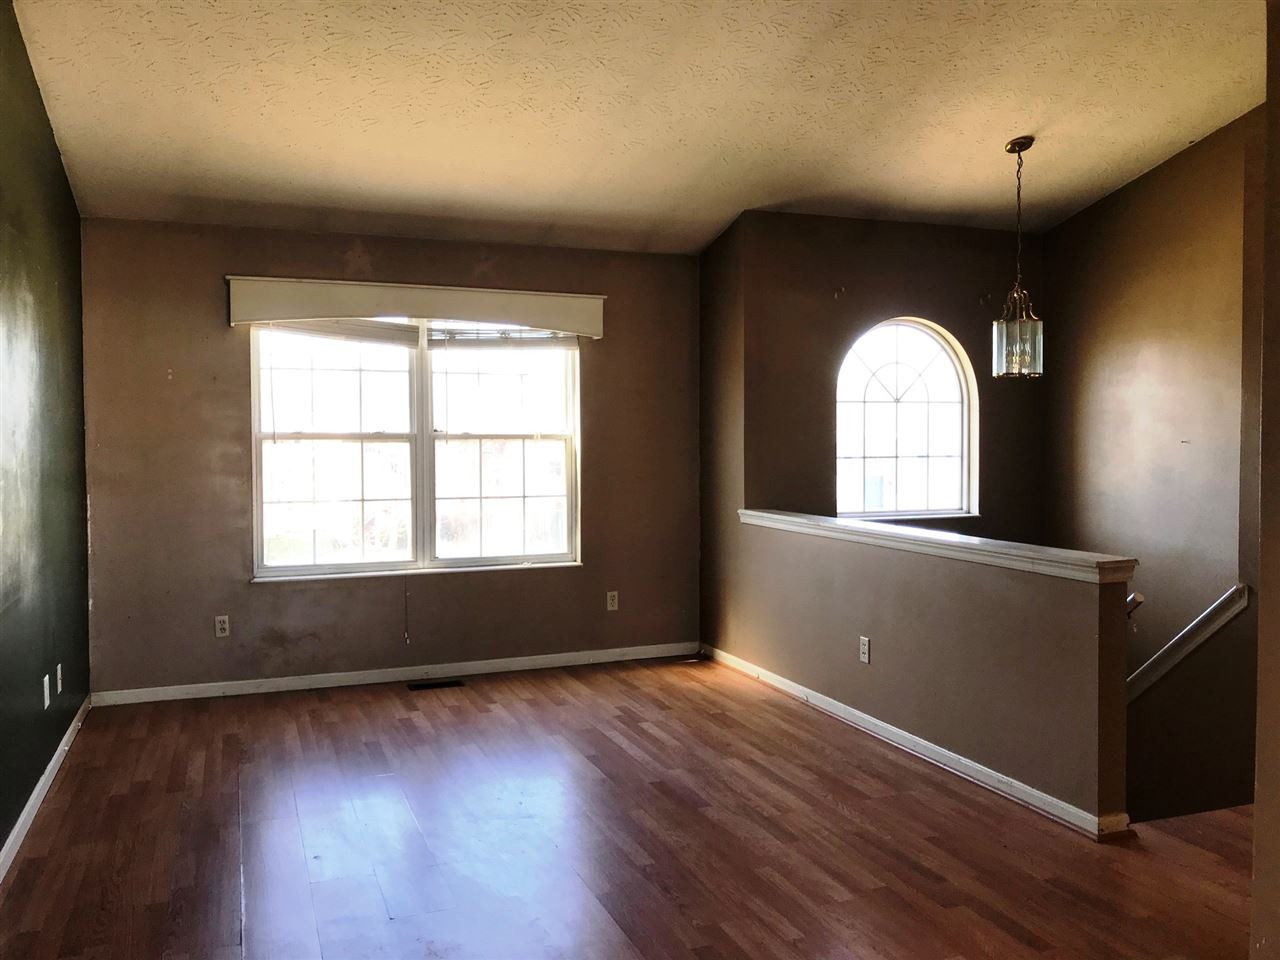 Photo 2 for 1031 Shadow Ridge Dr Elsmere, KY 41018